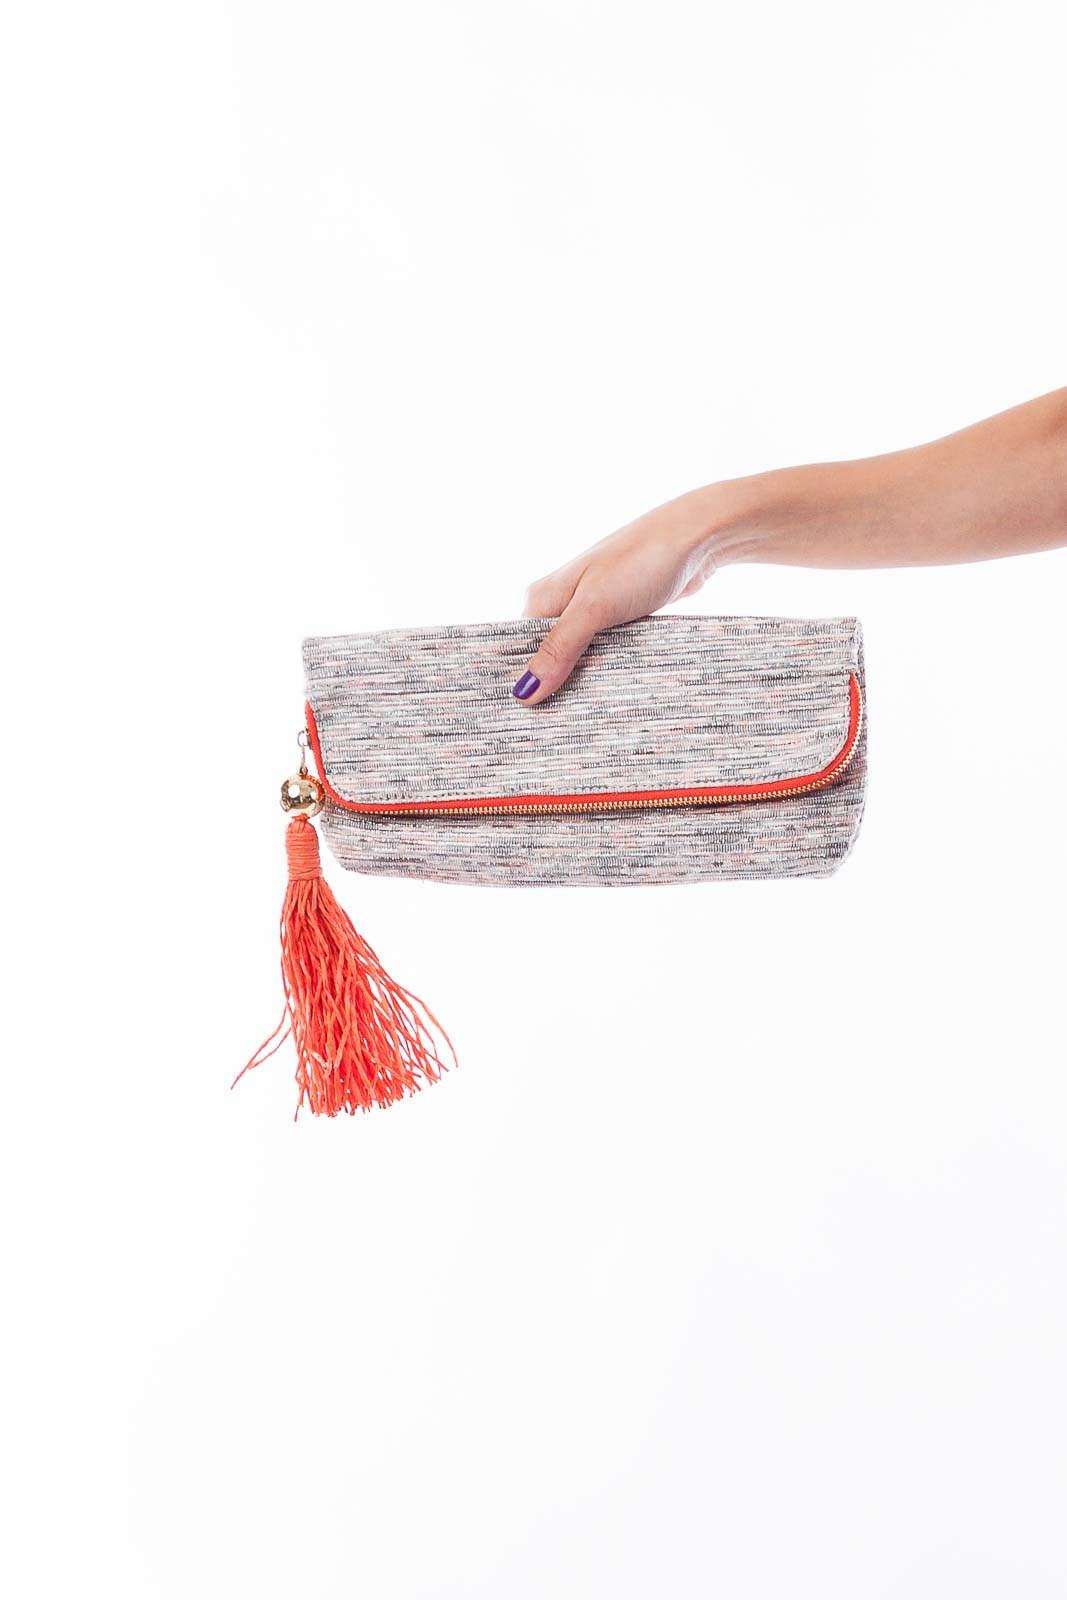 Silver and Orange Clutch Front